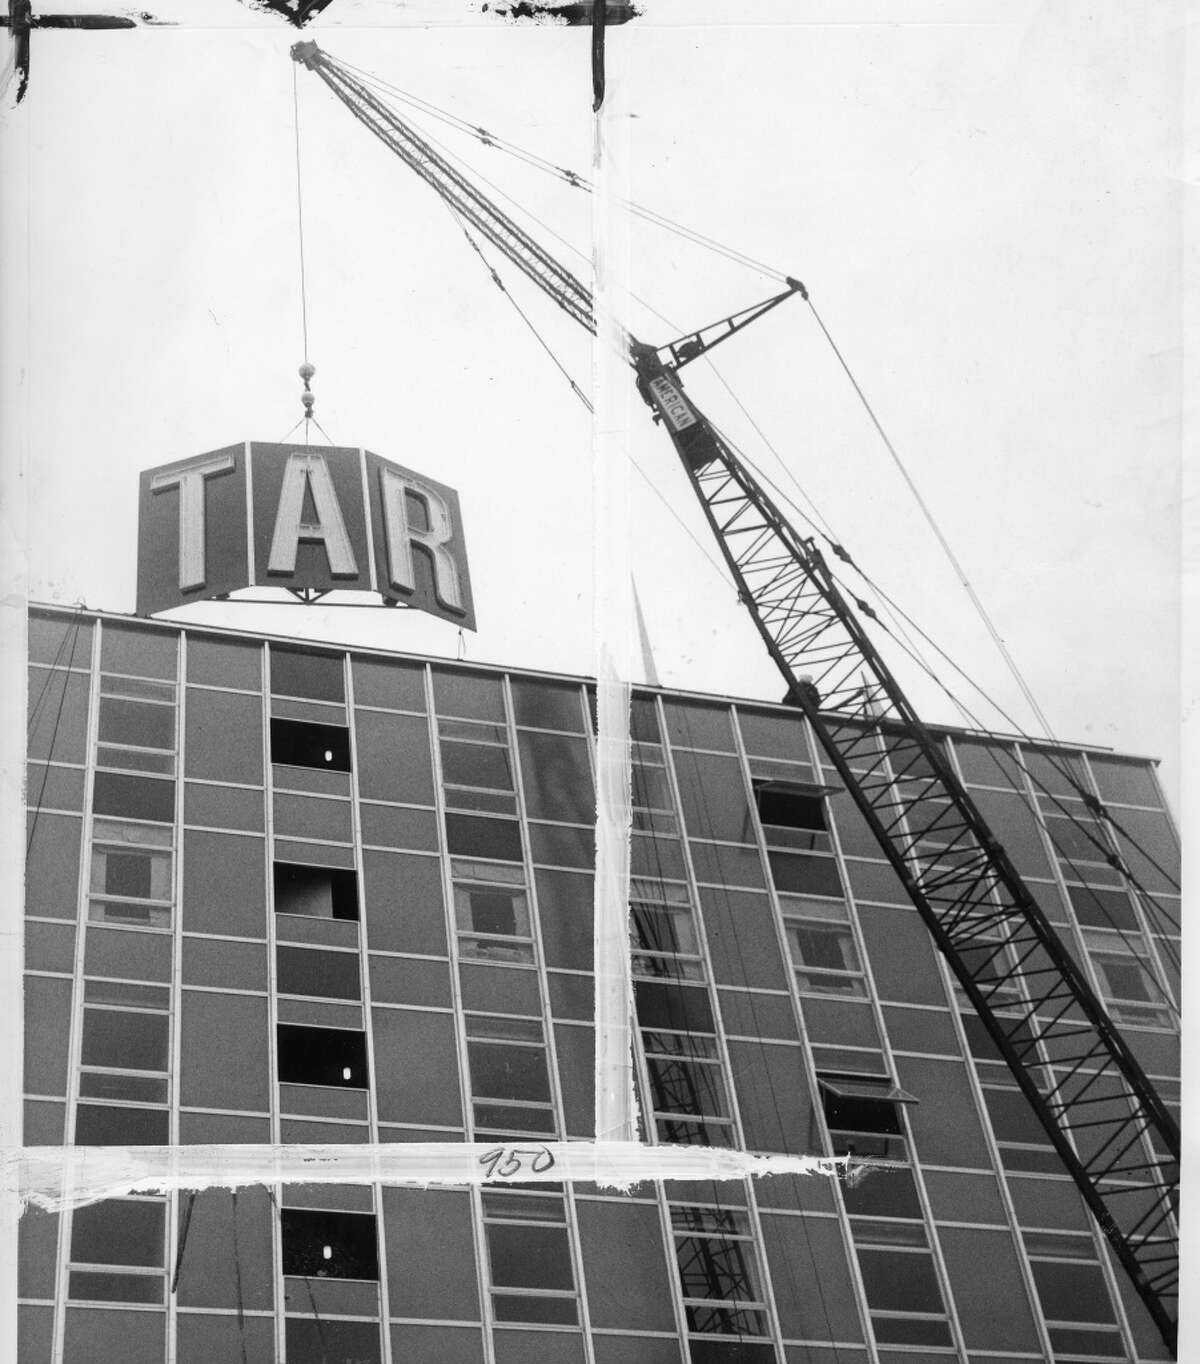 JACK TAR HOTEL: The Jack Tar opened on Van Ness at Geary in 1960 and was billed as